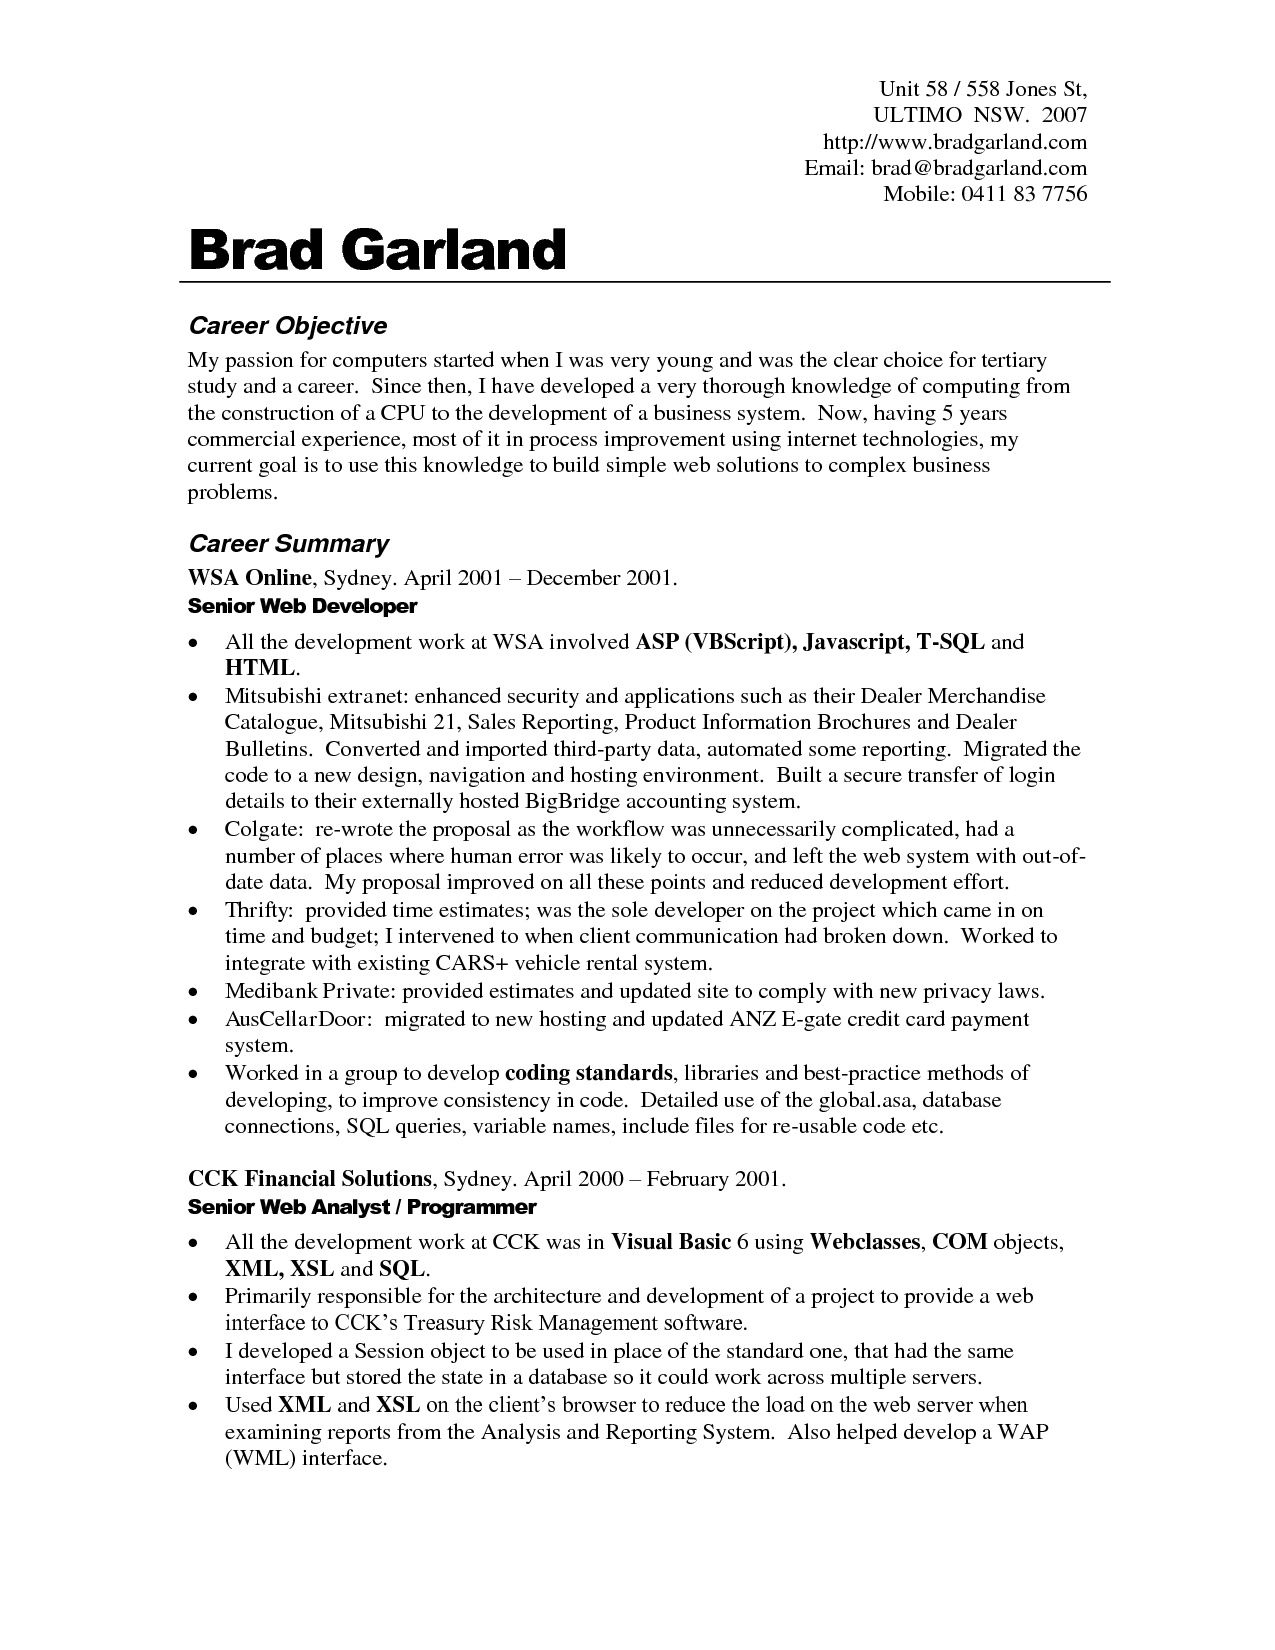 Beautiful Career Objective Resume Examples For Example Your Training Goals And  Objectives Rufoot Resumes Throughout Career Overview Resume